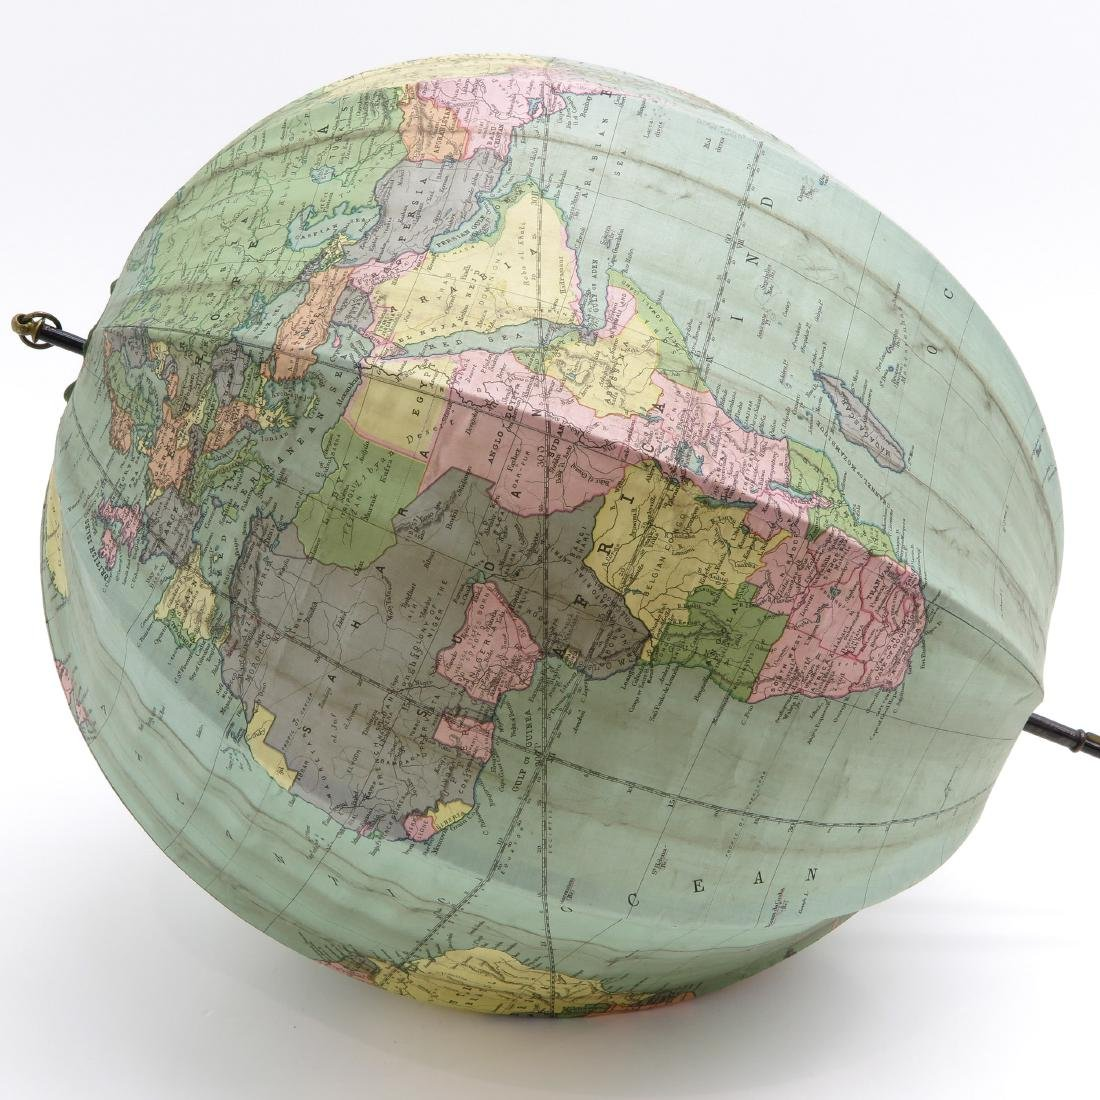 A Bett's Portable Terrestrial Globe with Box 1925 - 4